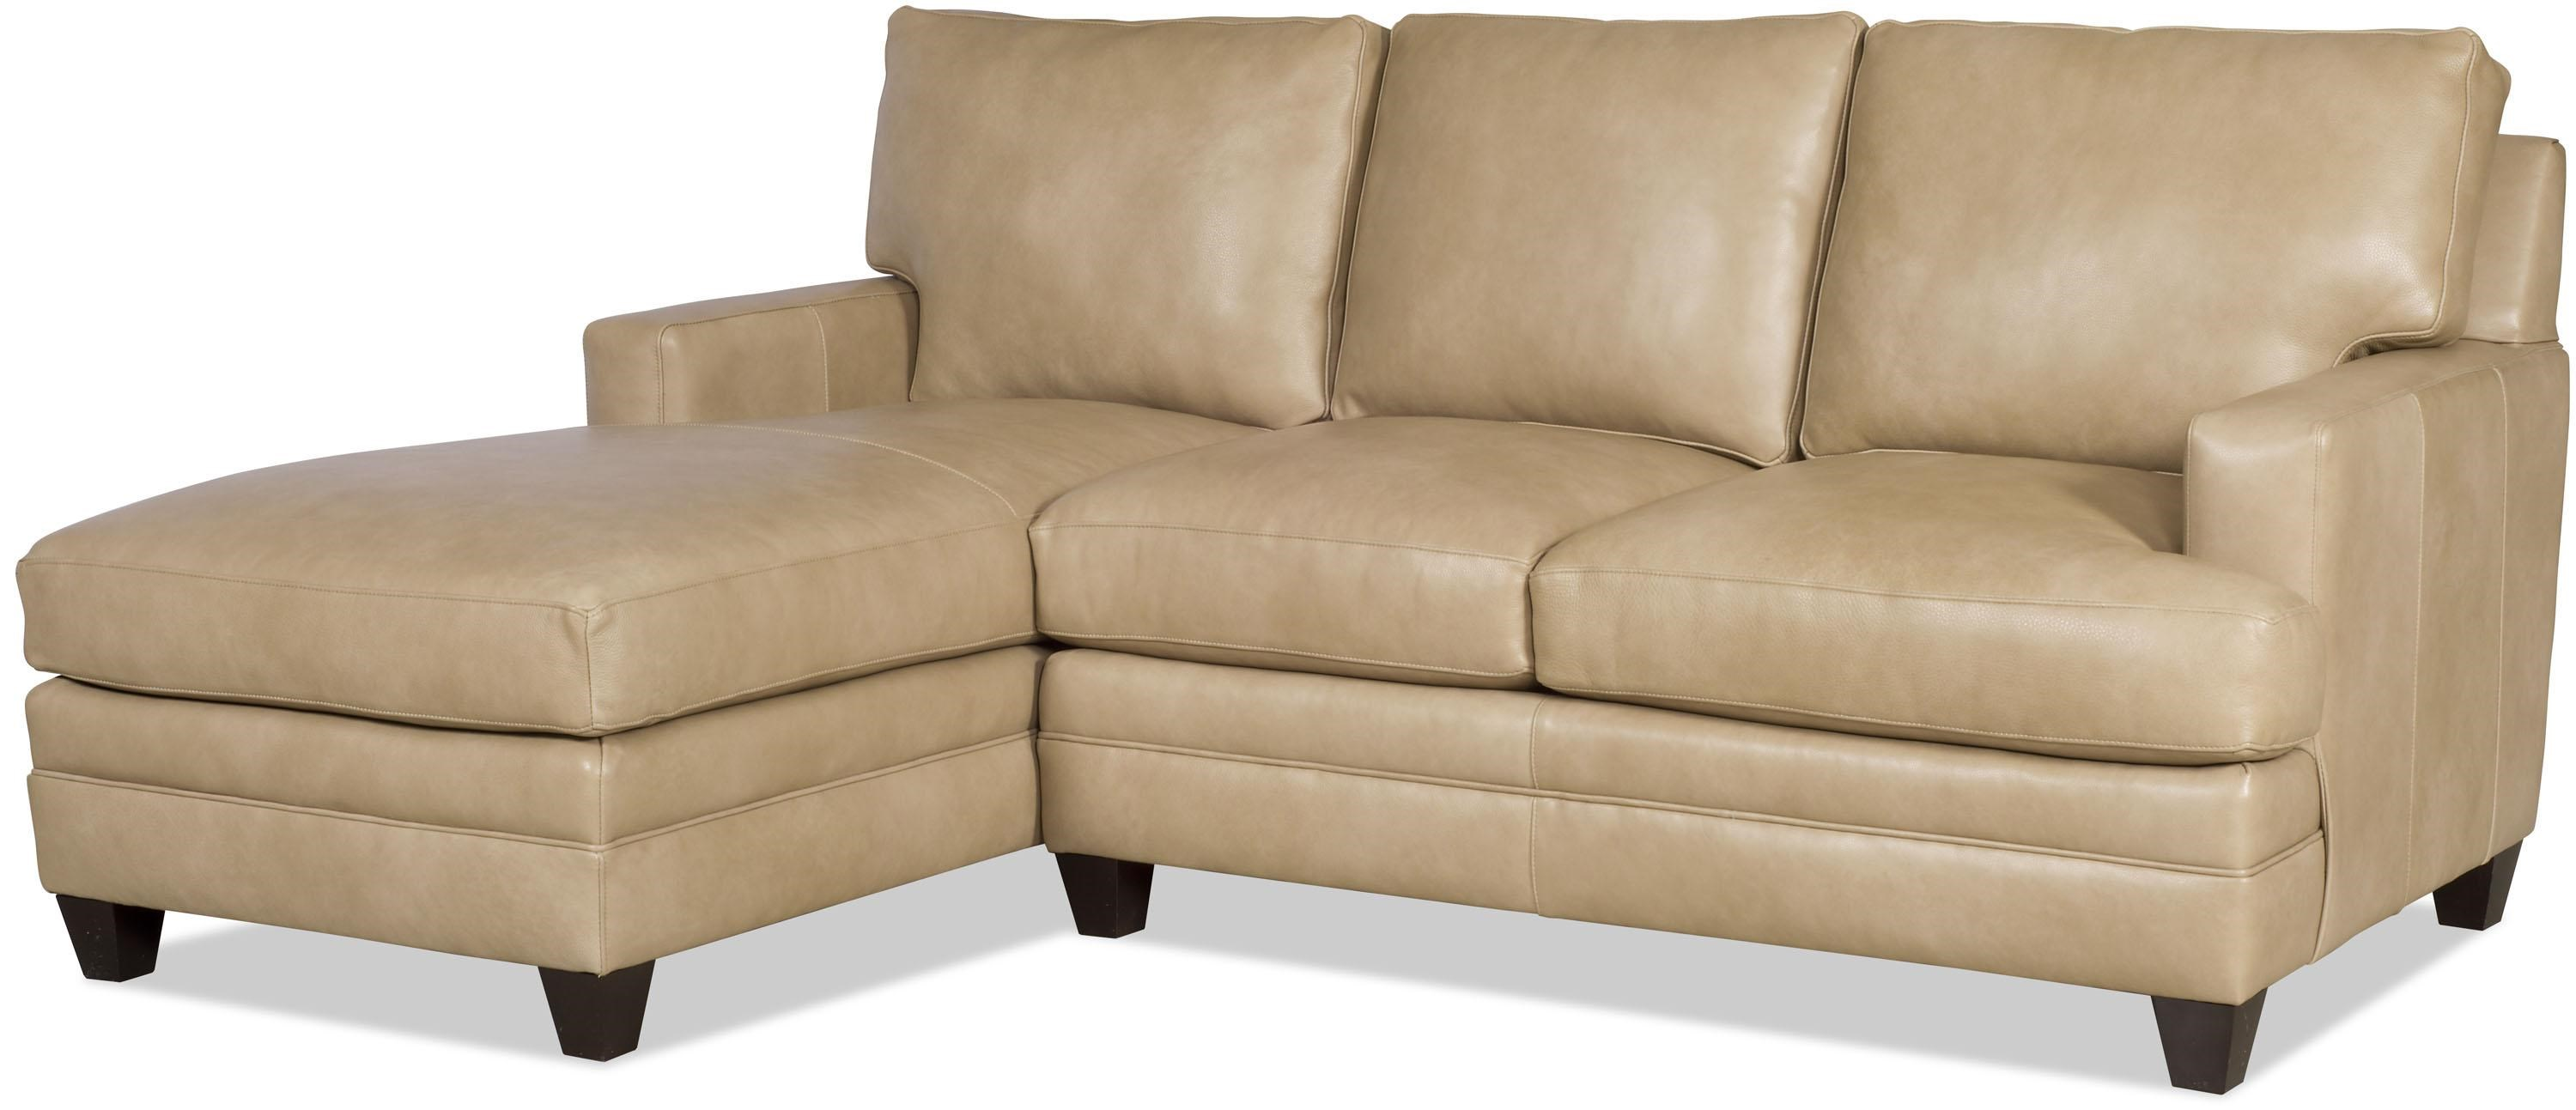 Bradington Young Donnelly Two Piece Sectional Sofa With LAF Chaise    Mueller Furniture   Sectional Sofas